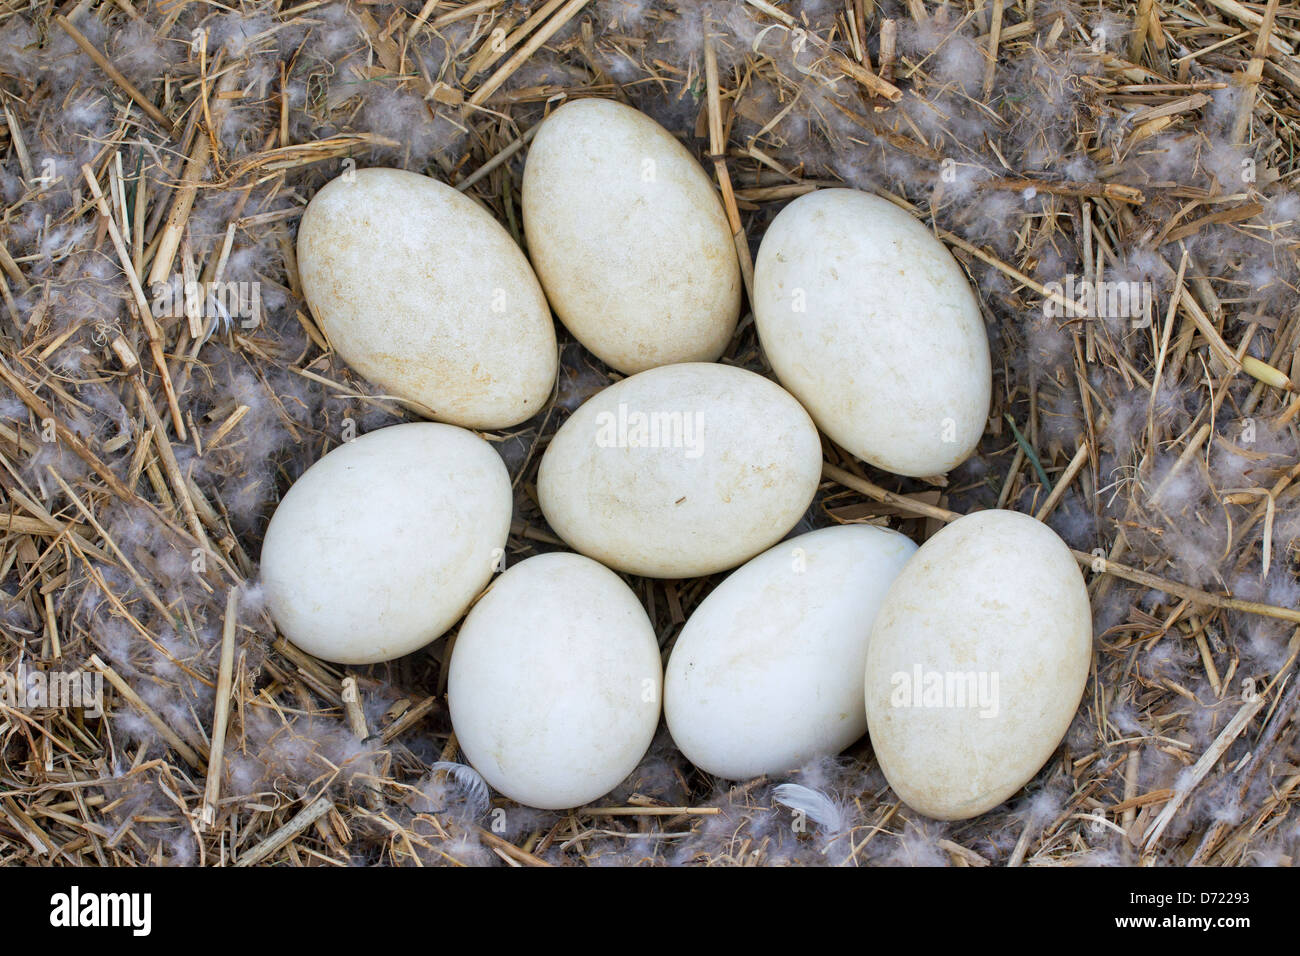 Greylag Goose / Graylag Goose (Anser anser) nest with clutch of eggs in reed bed - Stock Image